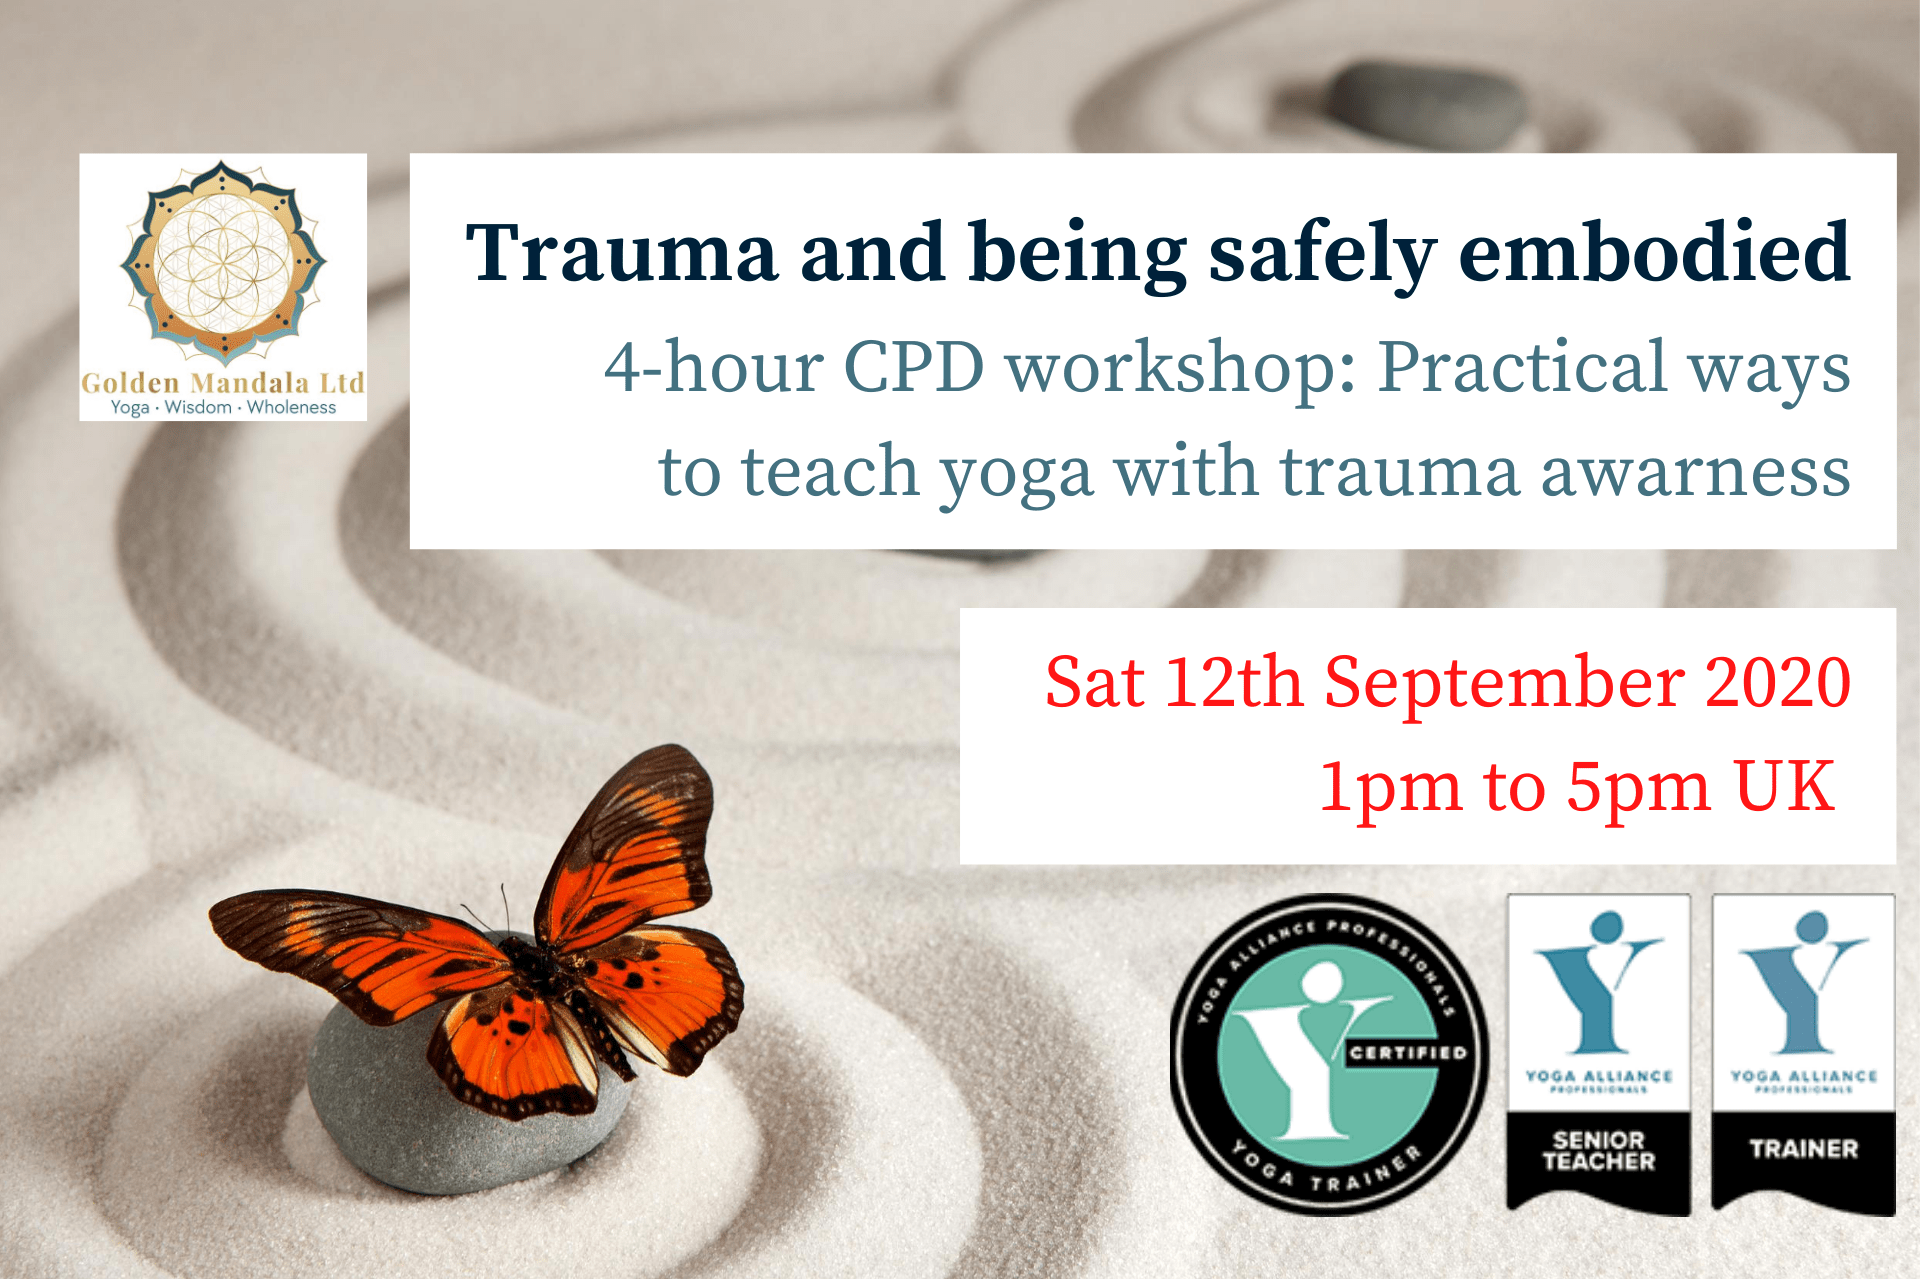 Cpd Yoga Teachers Training Trauma And Being Safely Embodied Thrive With Embodied Wisdom